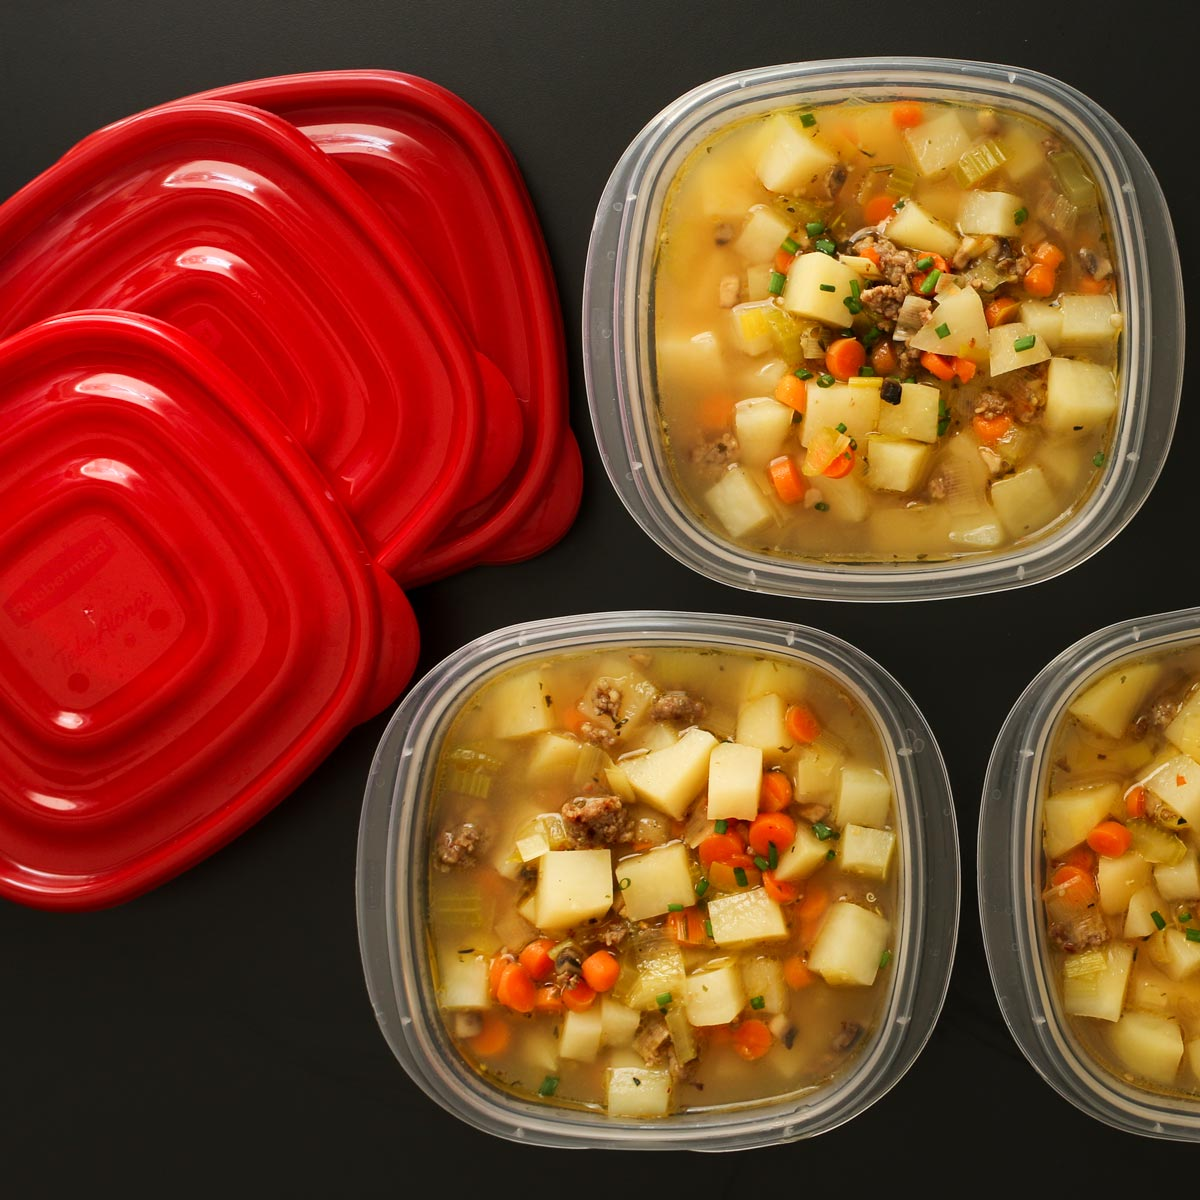 potato soup with sausage in meal prep containers with lids nearby.